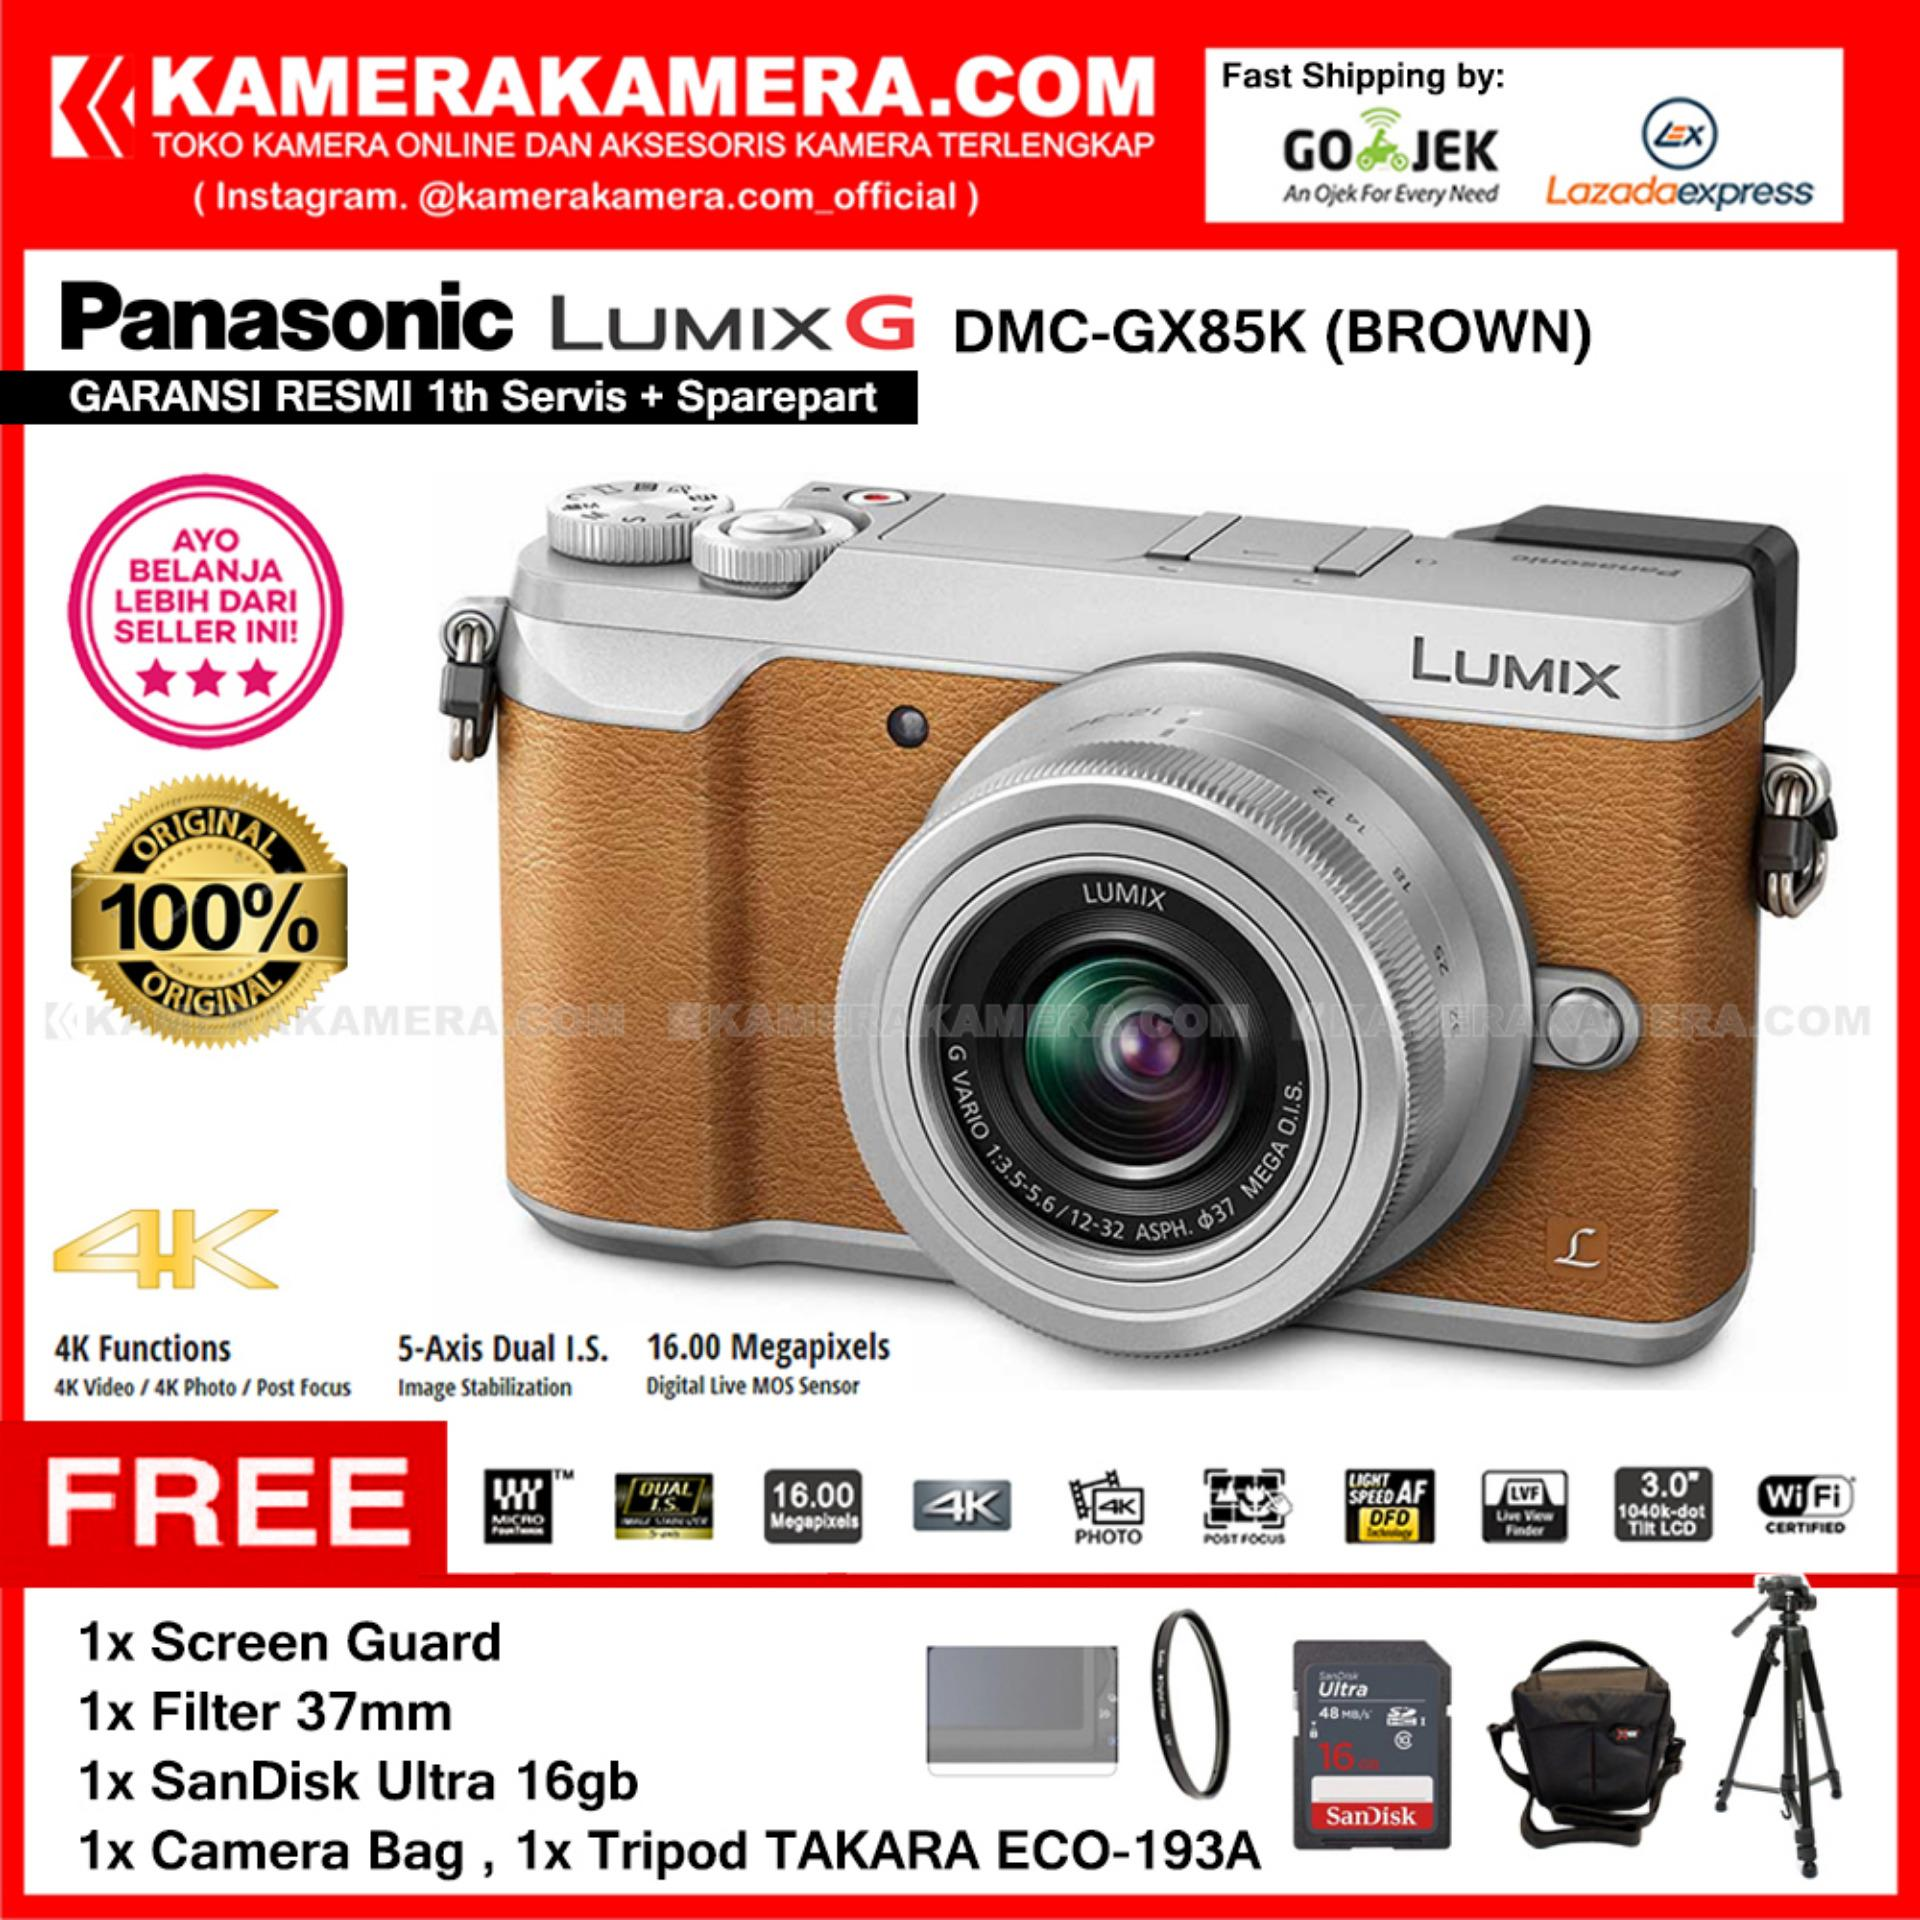 PANASONIC LUMIX DMC-GX85K Kamera Mirrorless GX85 BROWN 12-32mm (Resmi) Free SanDisk Ultra 16gb + Screen Guard + Filter 37mm + Bag + Takara ECO-193A